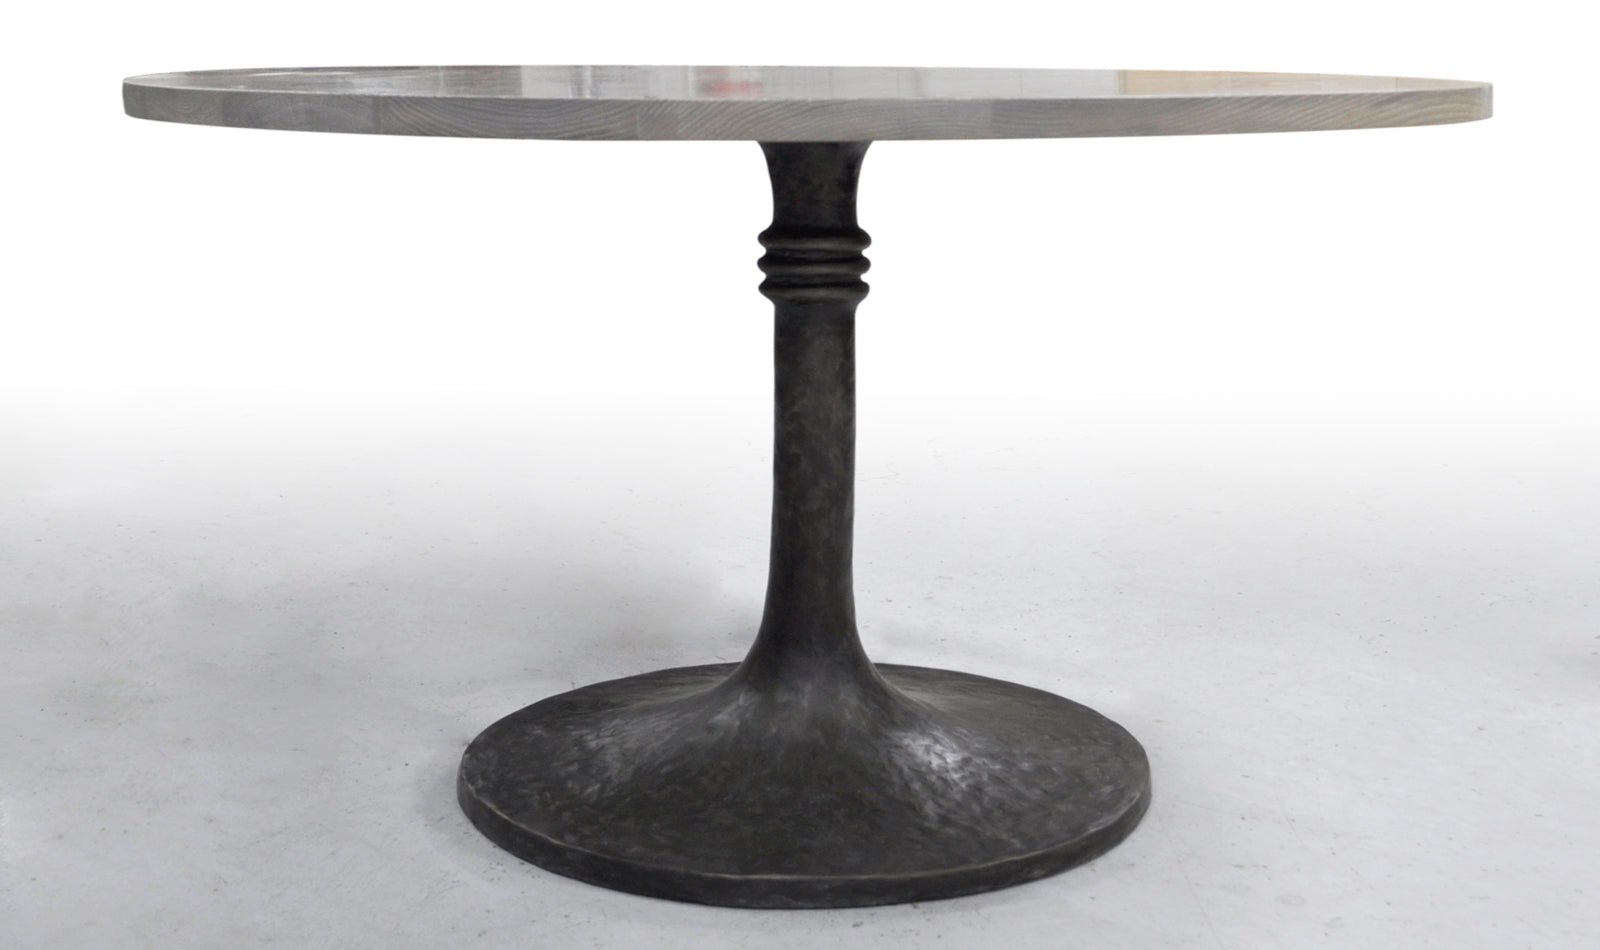 THE WILLOWOOD BRONZE TABLE